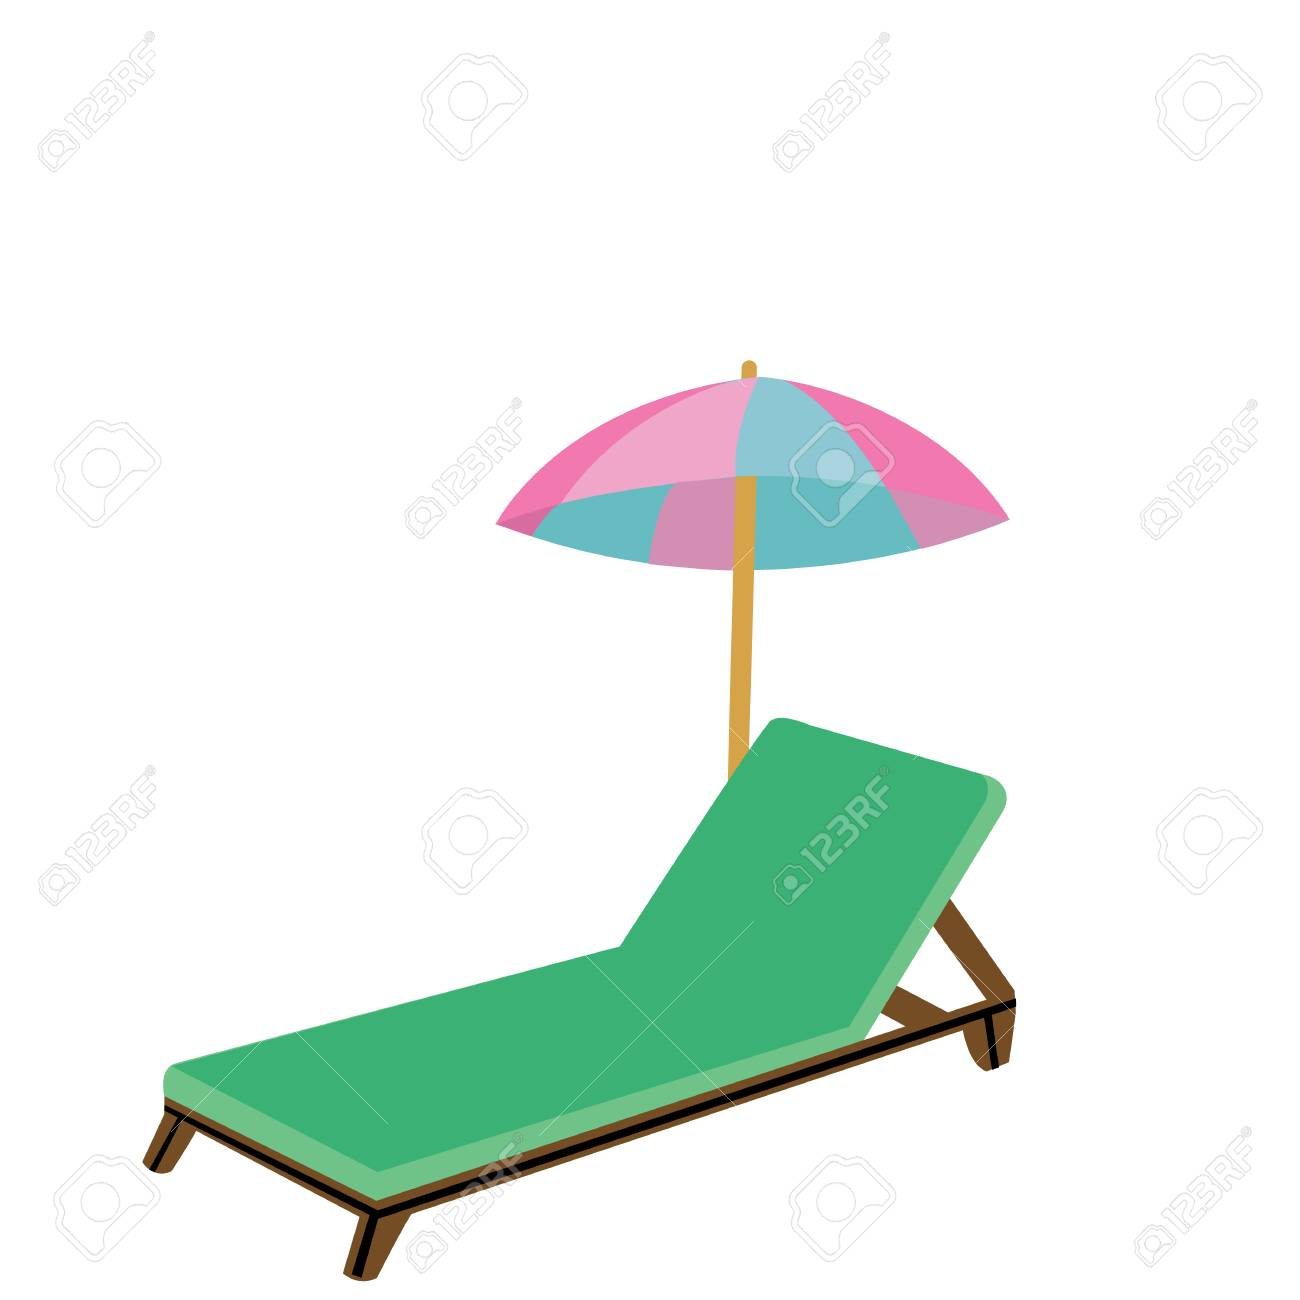 Cartoon Style Wooden Beach Chair For Relaxing Summer And Spring